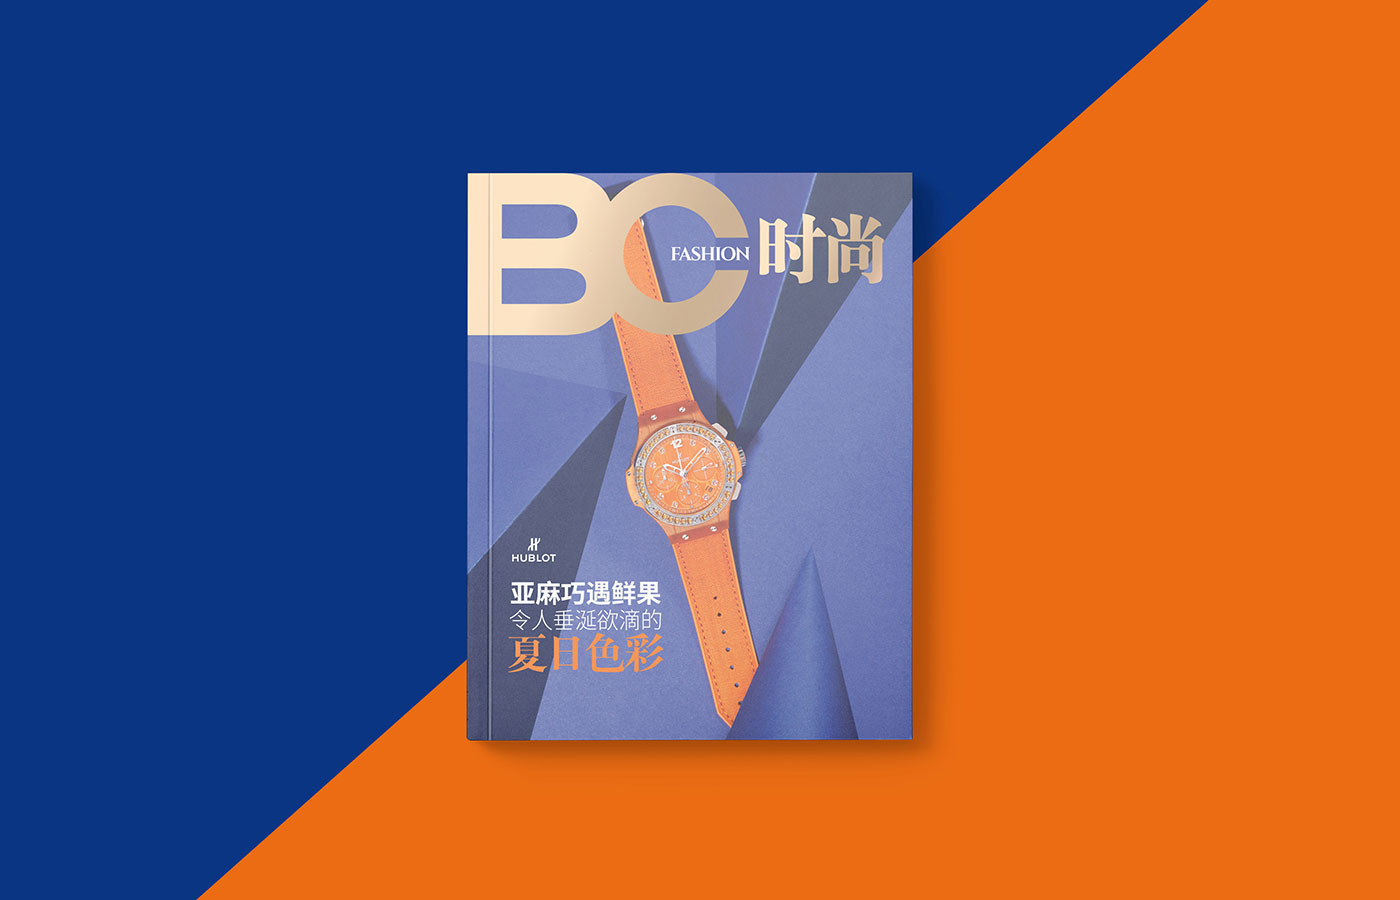 bc branding & magazine design by Z Creative Studio Branding & Graphic Design Melbourne